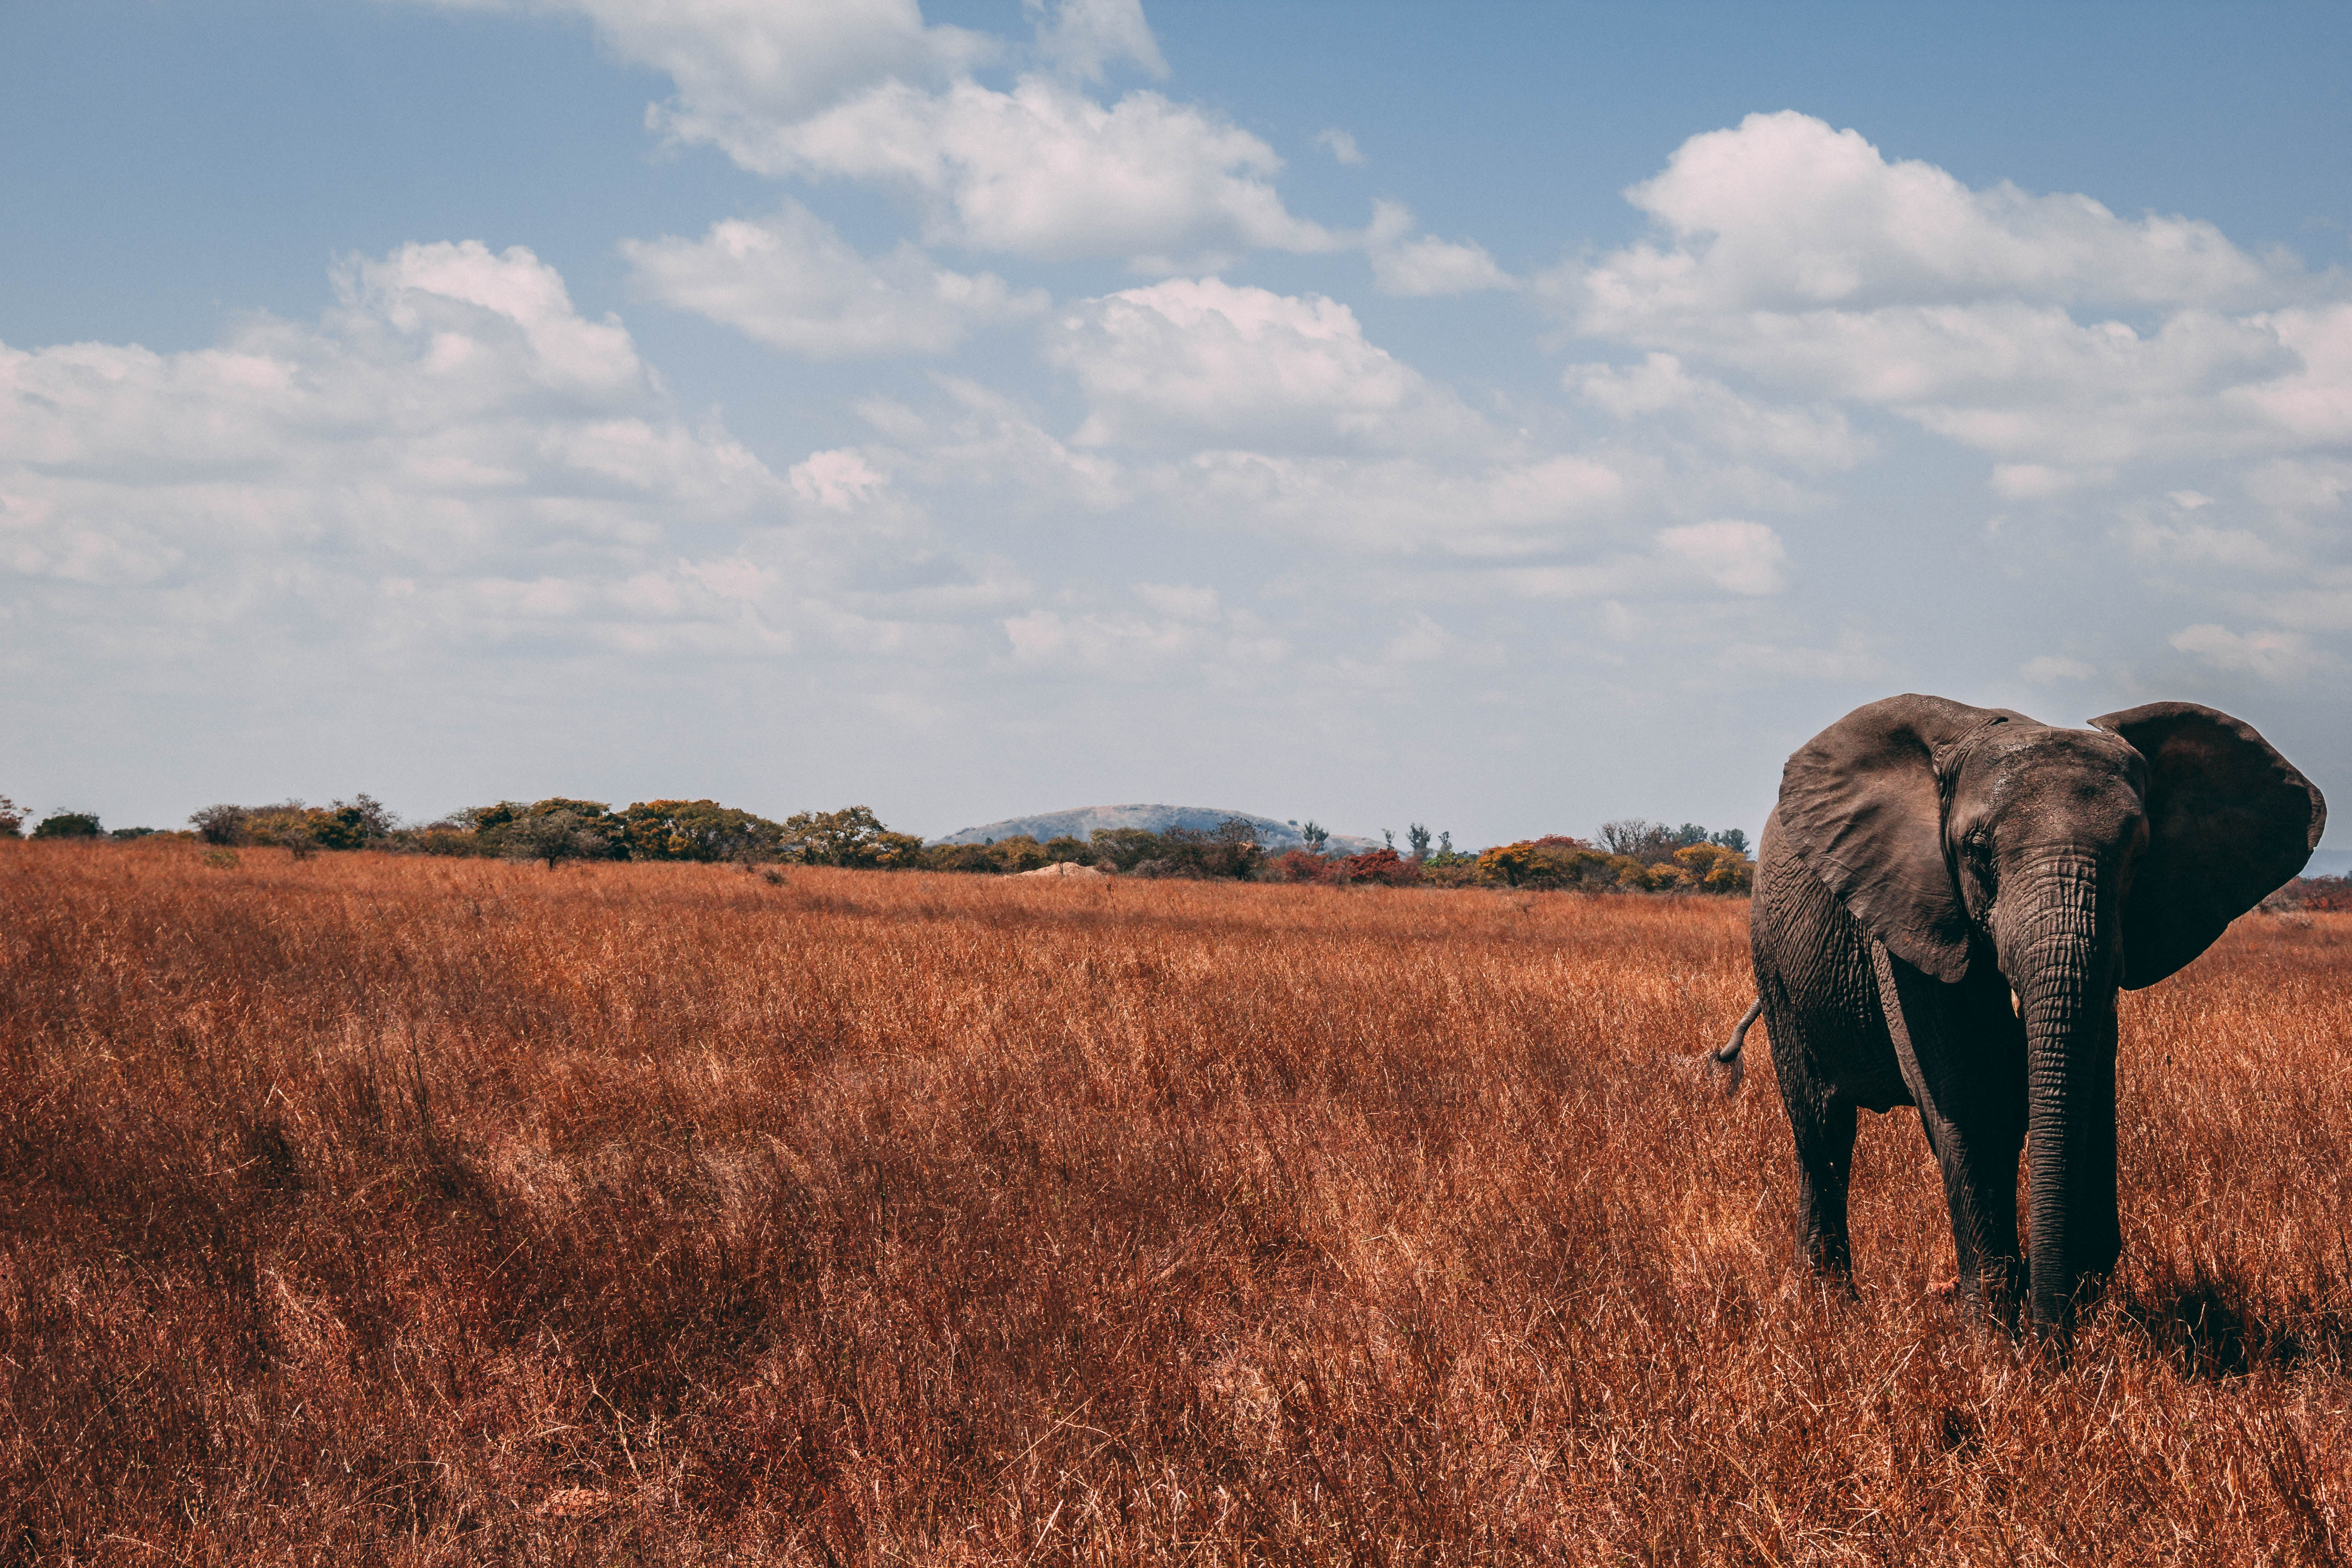 156389 download wallpaper Animals, Elephant, Stroll, Trunk, Grass screensavers and pictures for free